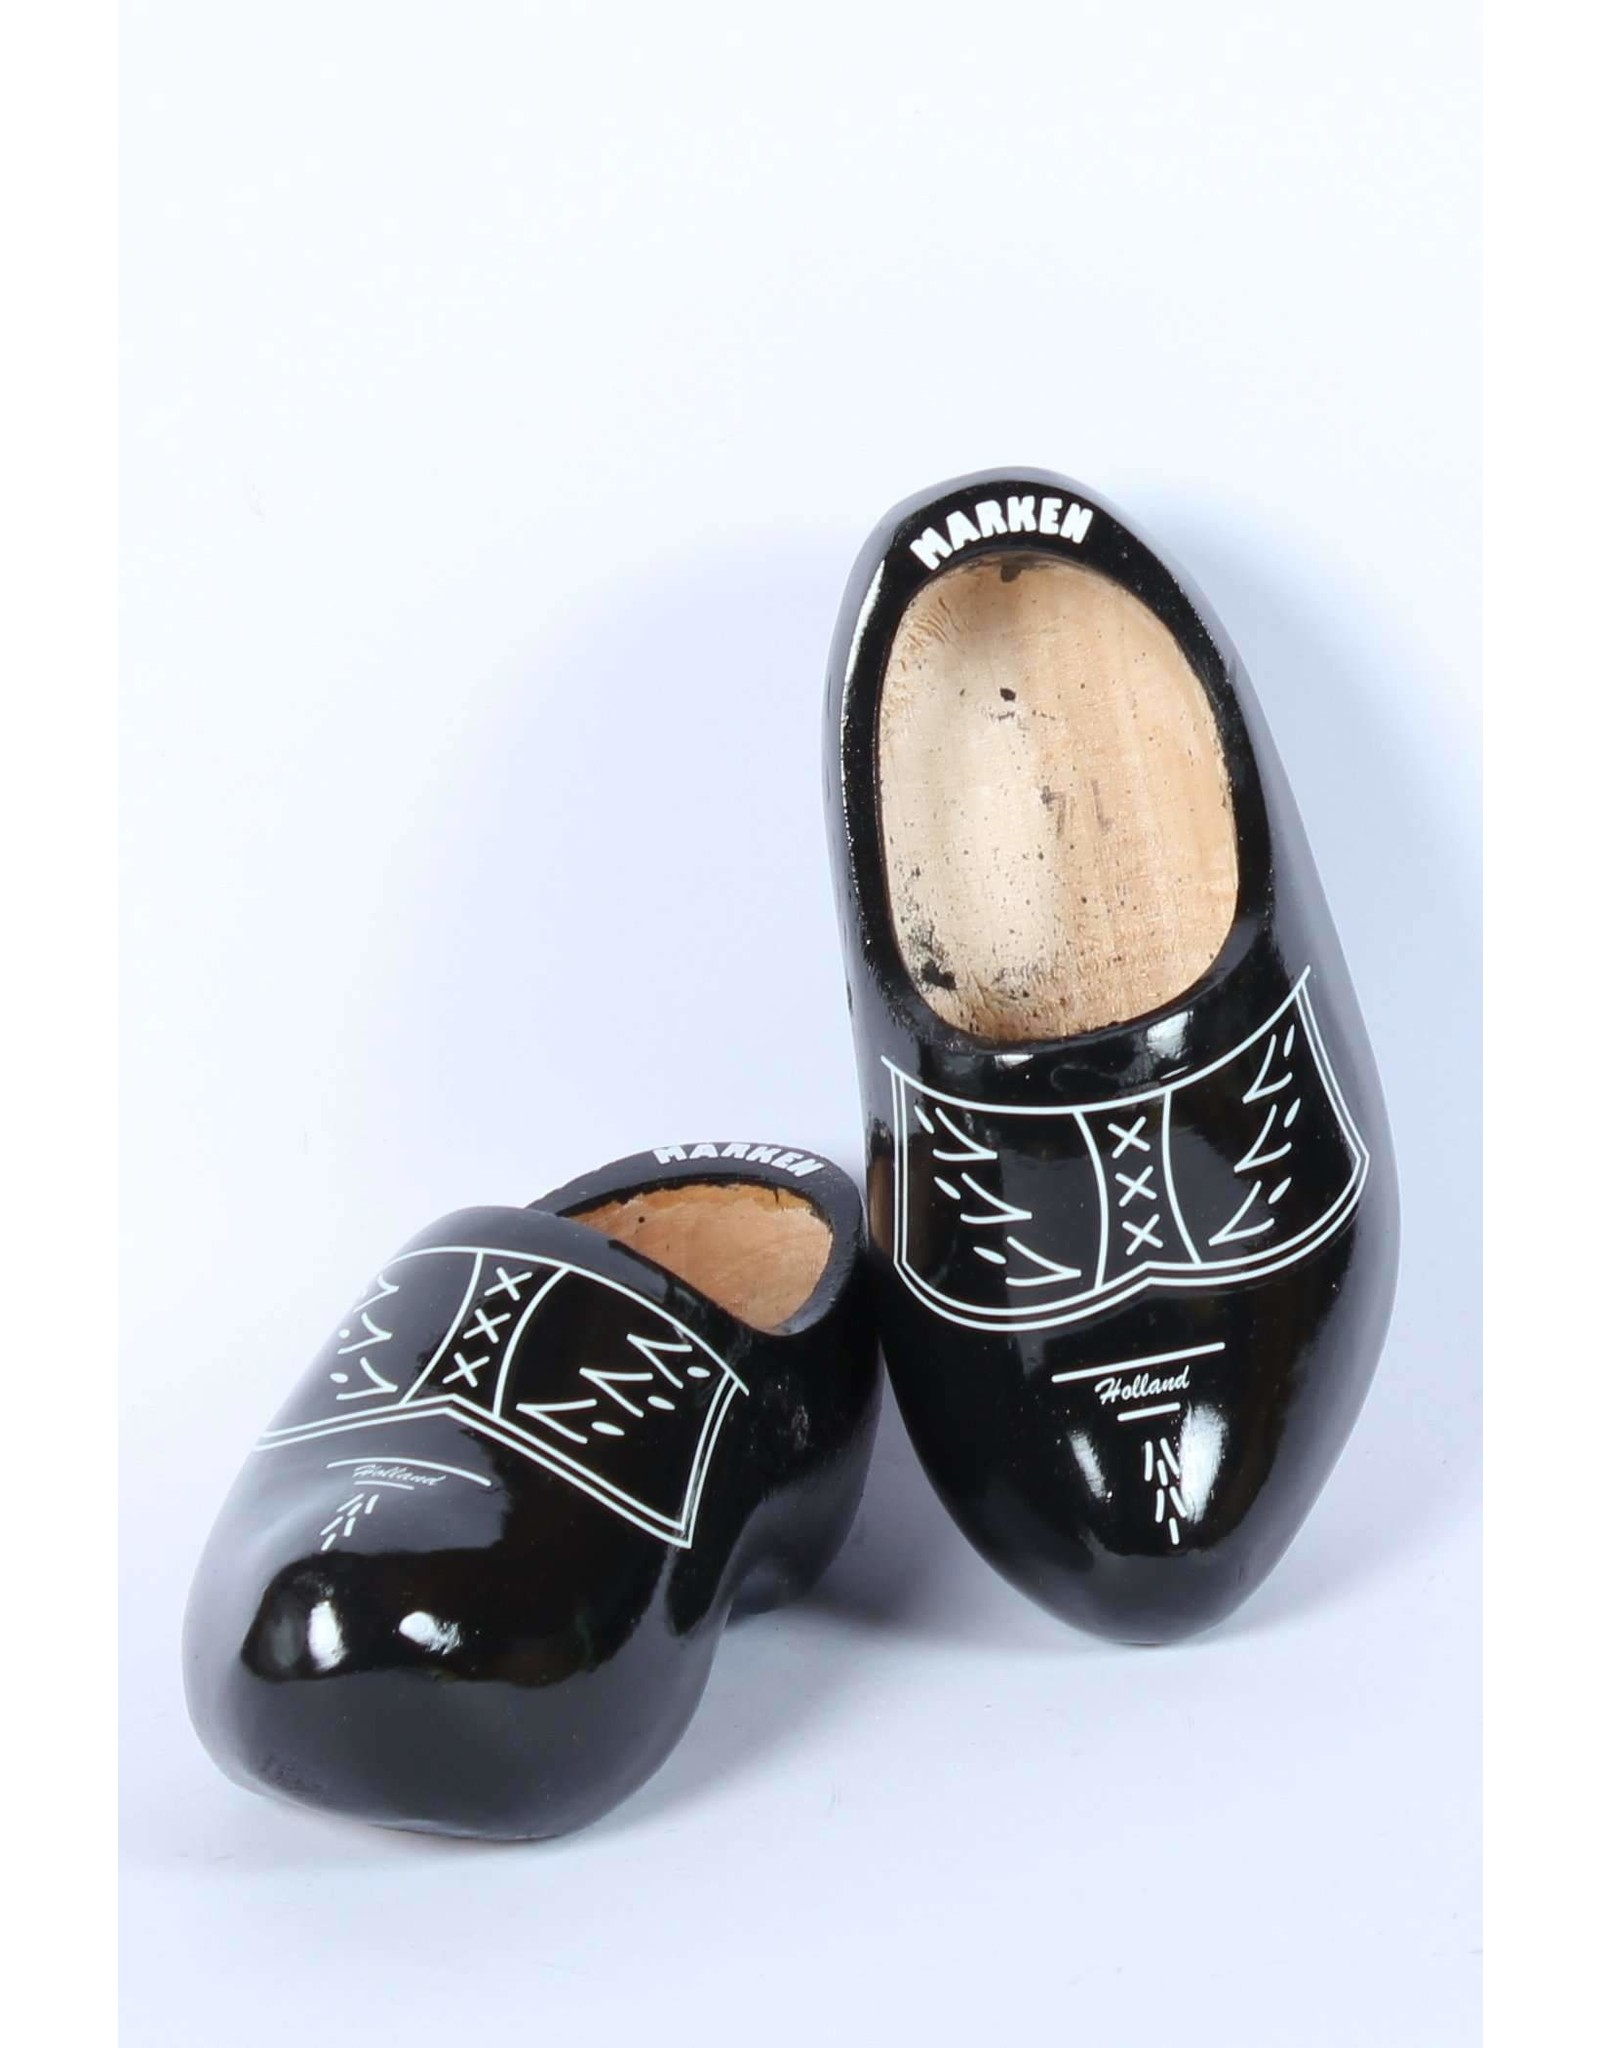 Wooden Shoe Factory Marken Wooden Shoes Traditional Black